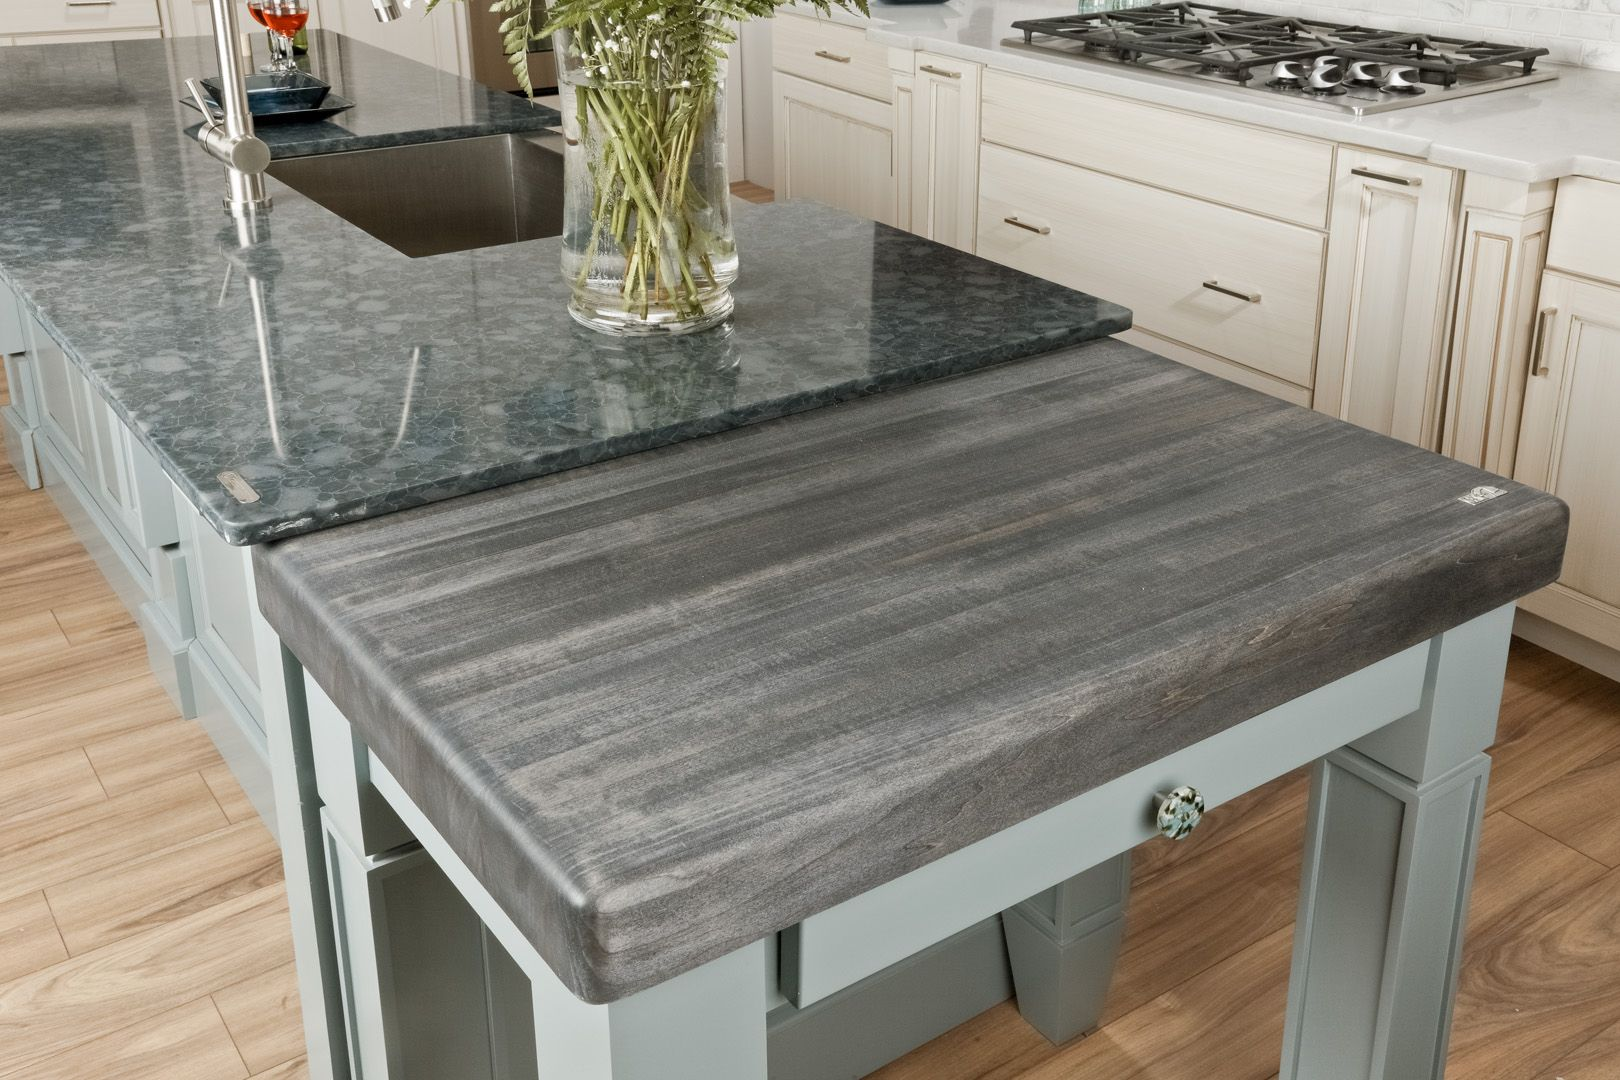 Custom Butcher Block Top By Cafe Countertops Http Www Cafecountertops